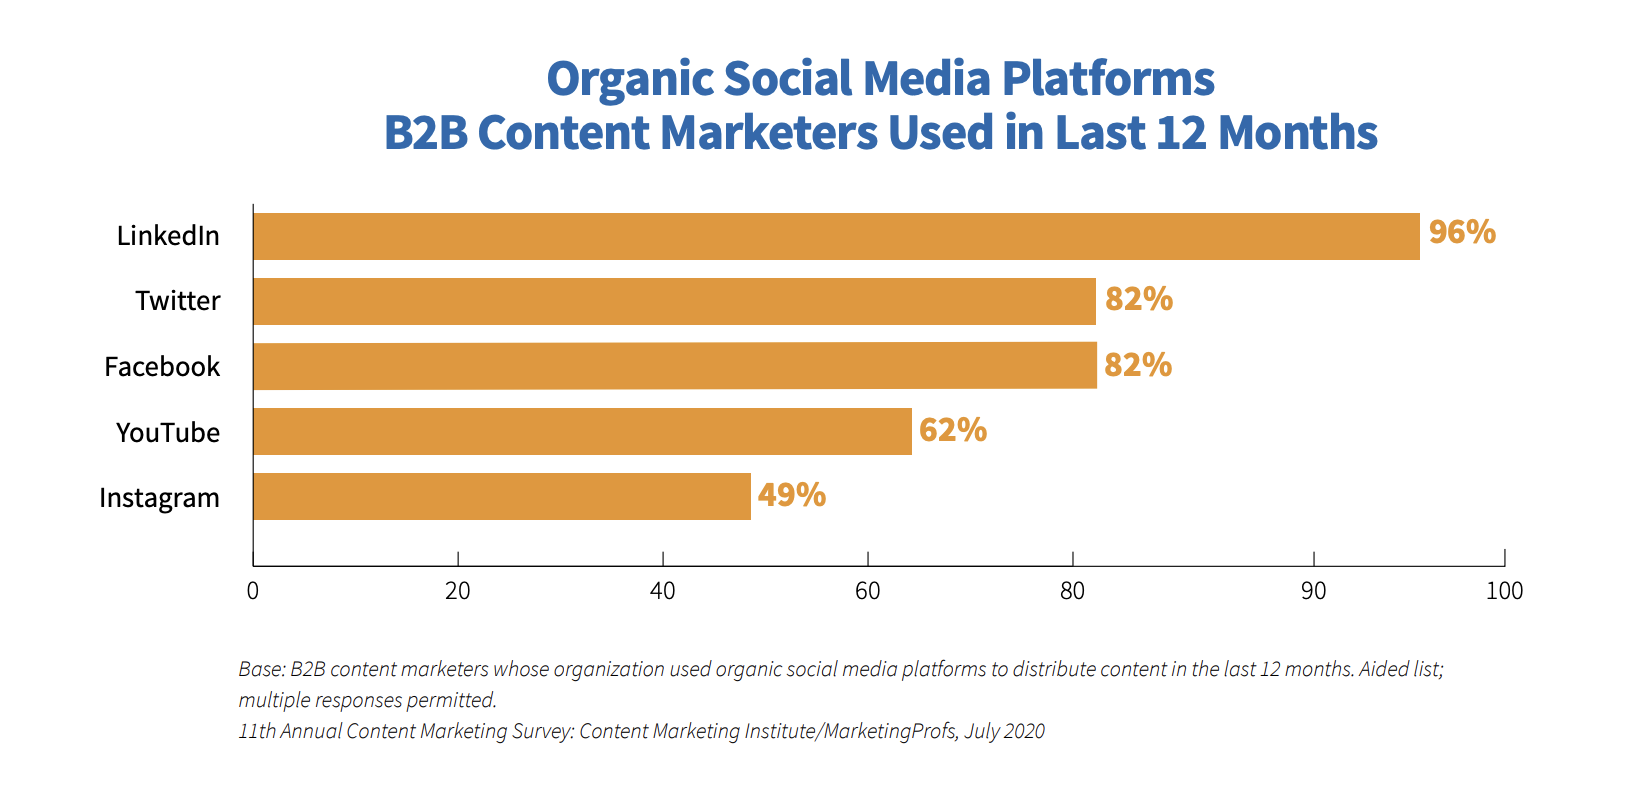 B2B Content Marketers social platforms used.